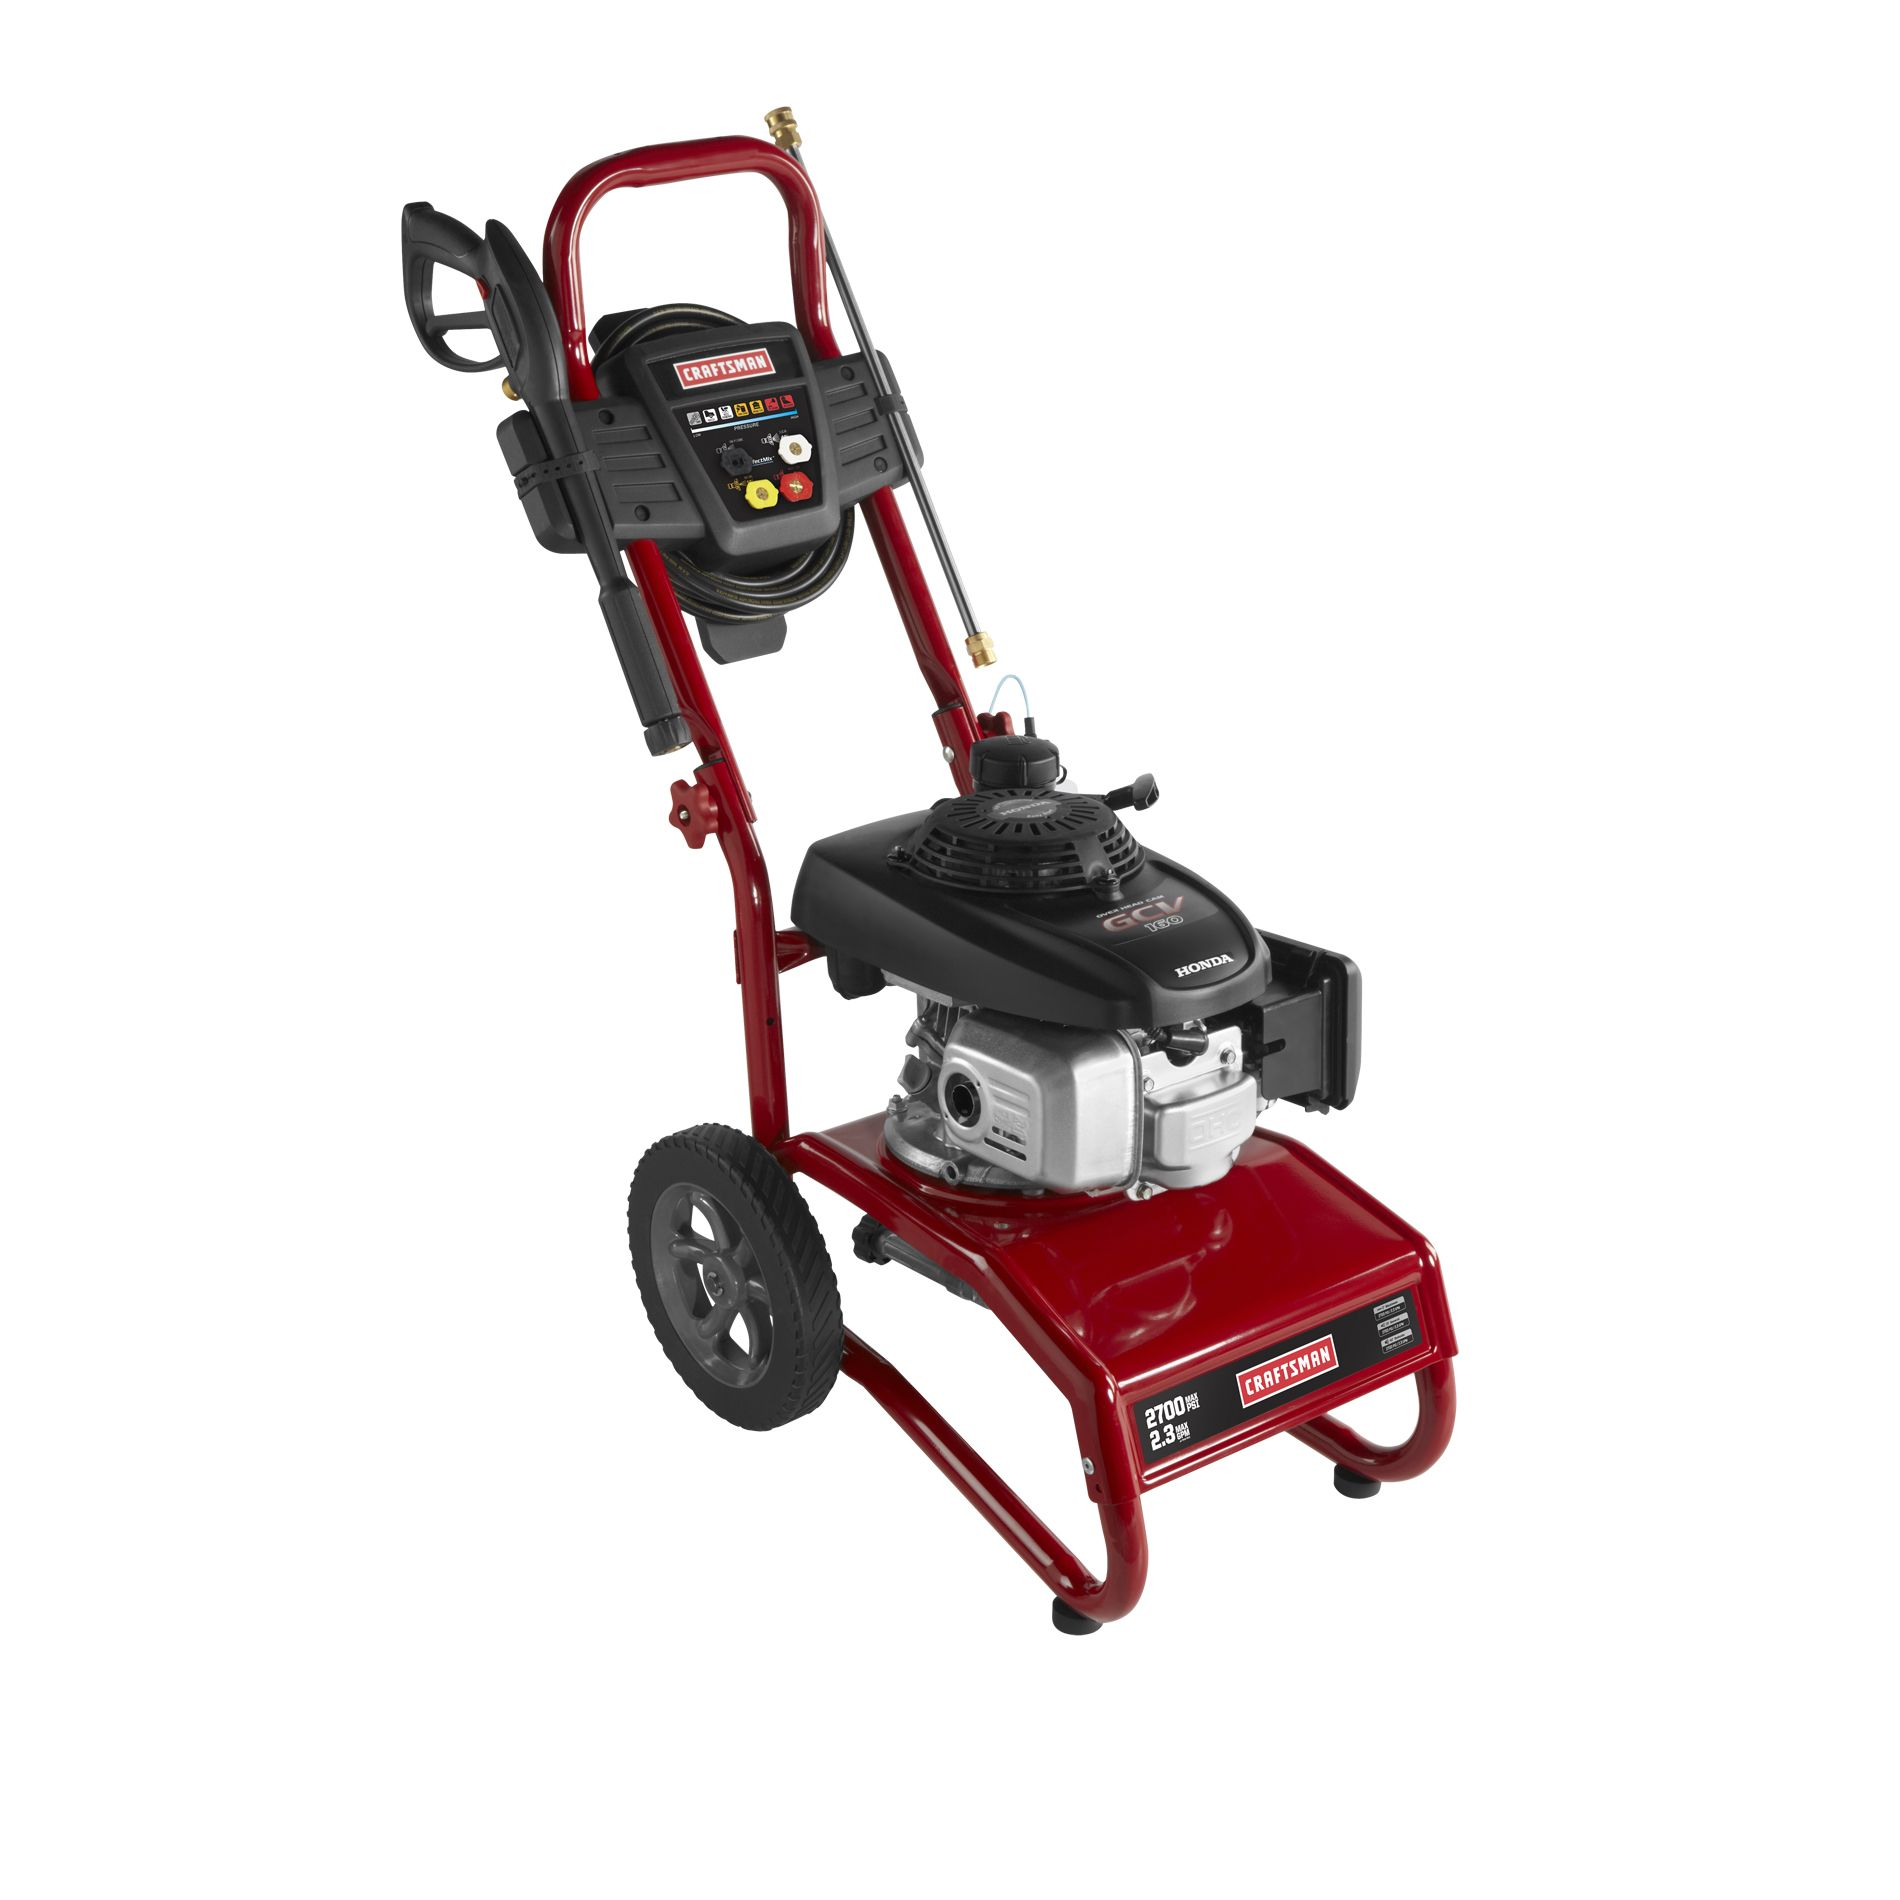 Craftsman Pressure Washer 2700 PSI, 2.3 GPM Honda Powered